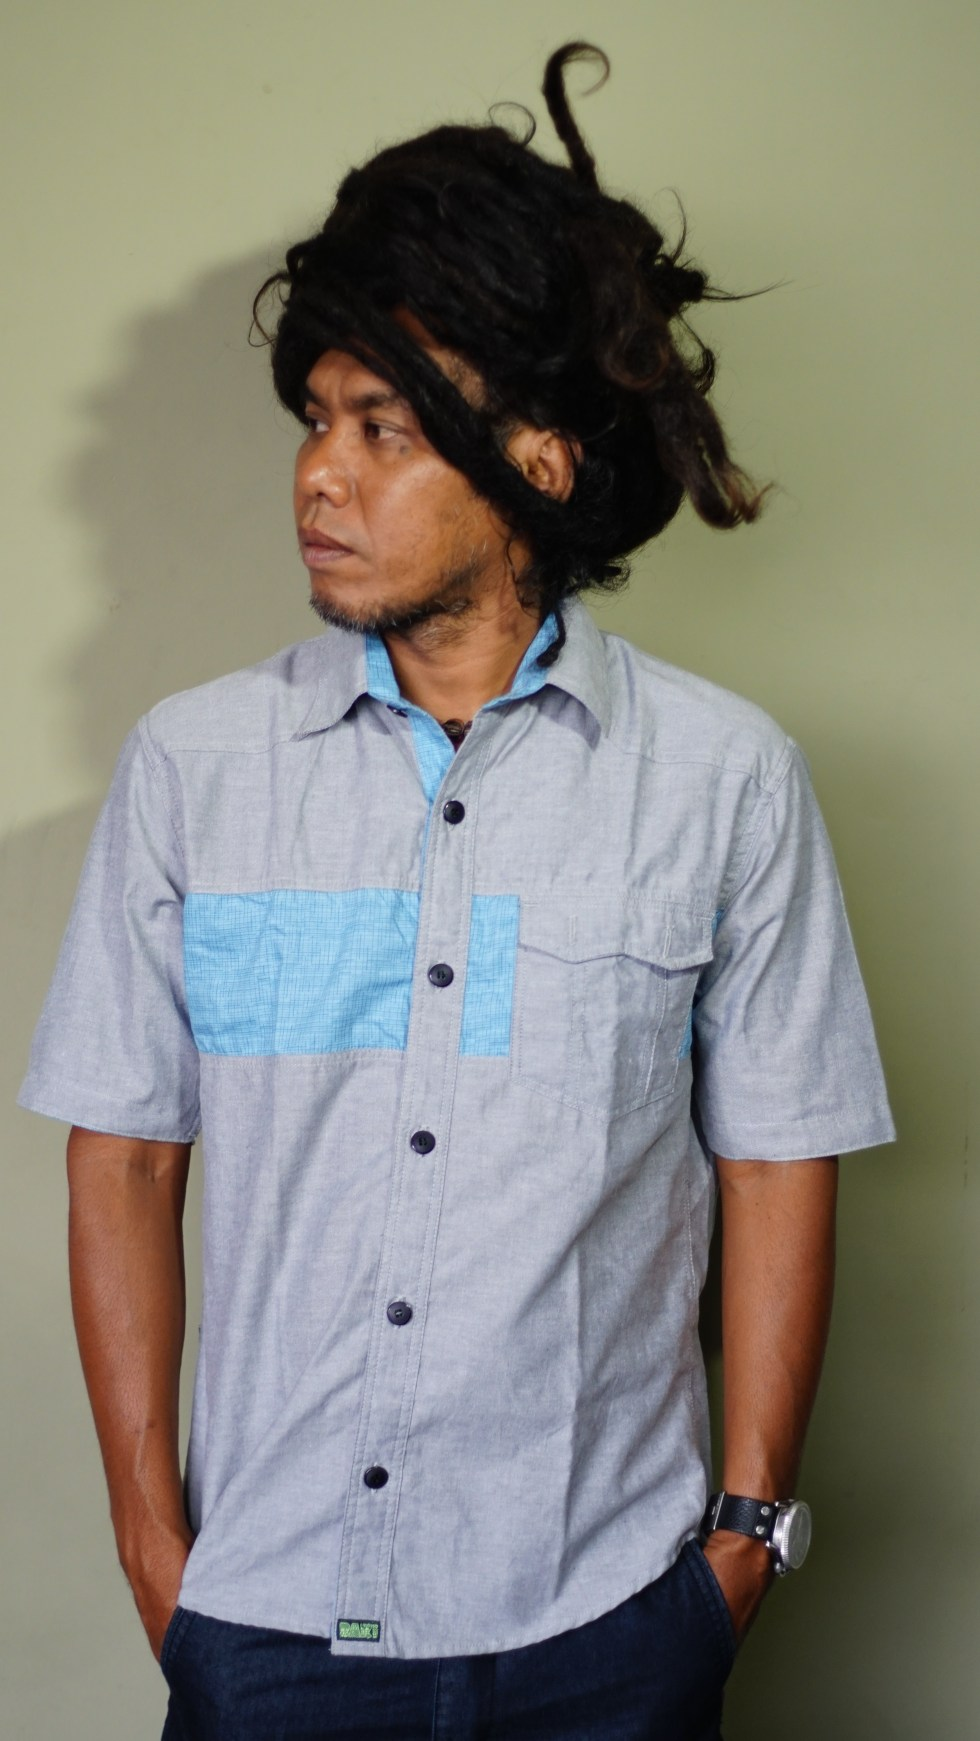 Marapu Reggae is supported by Baki Clothing Company